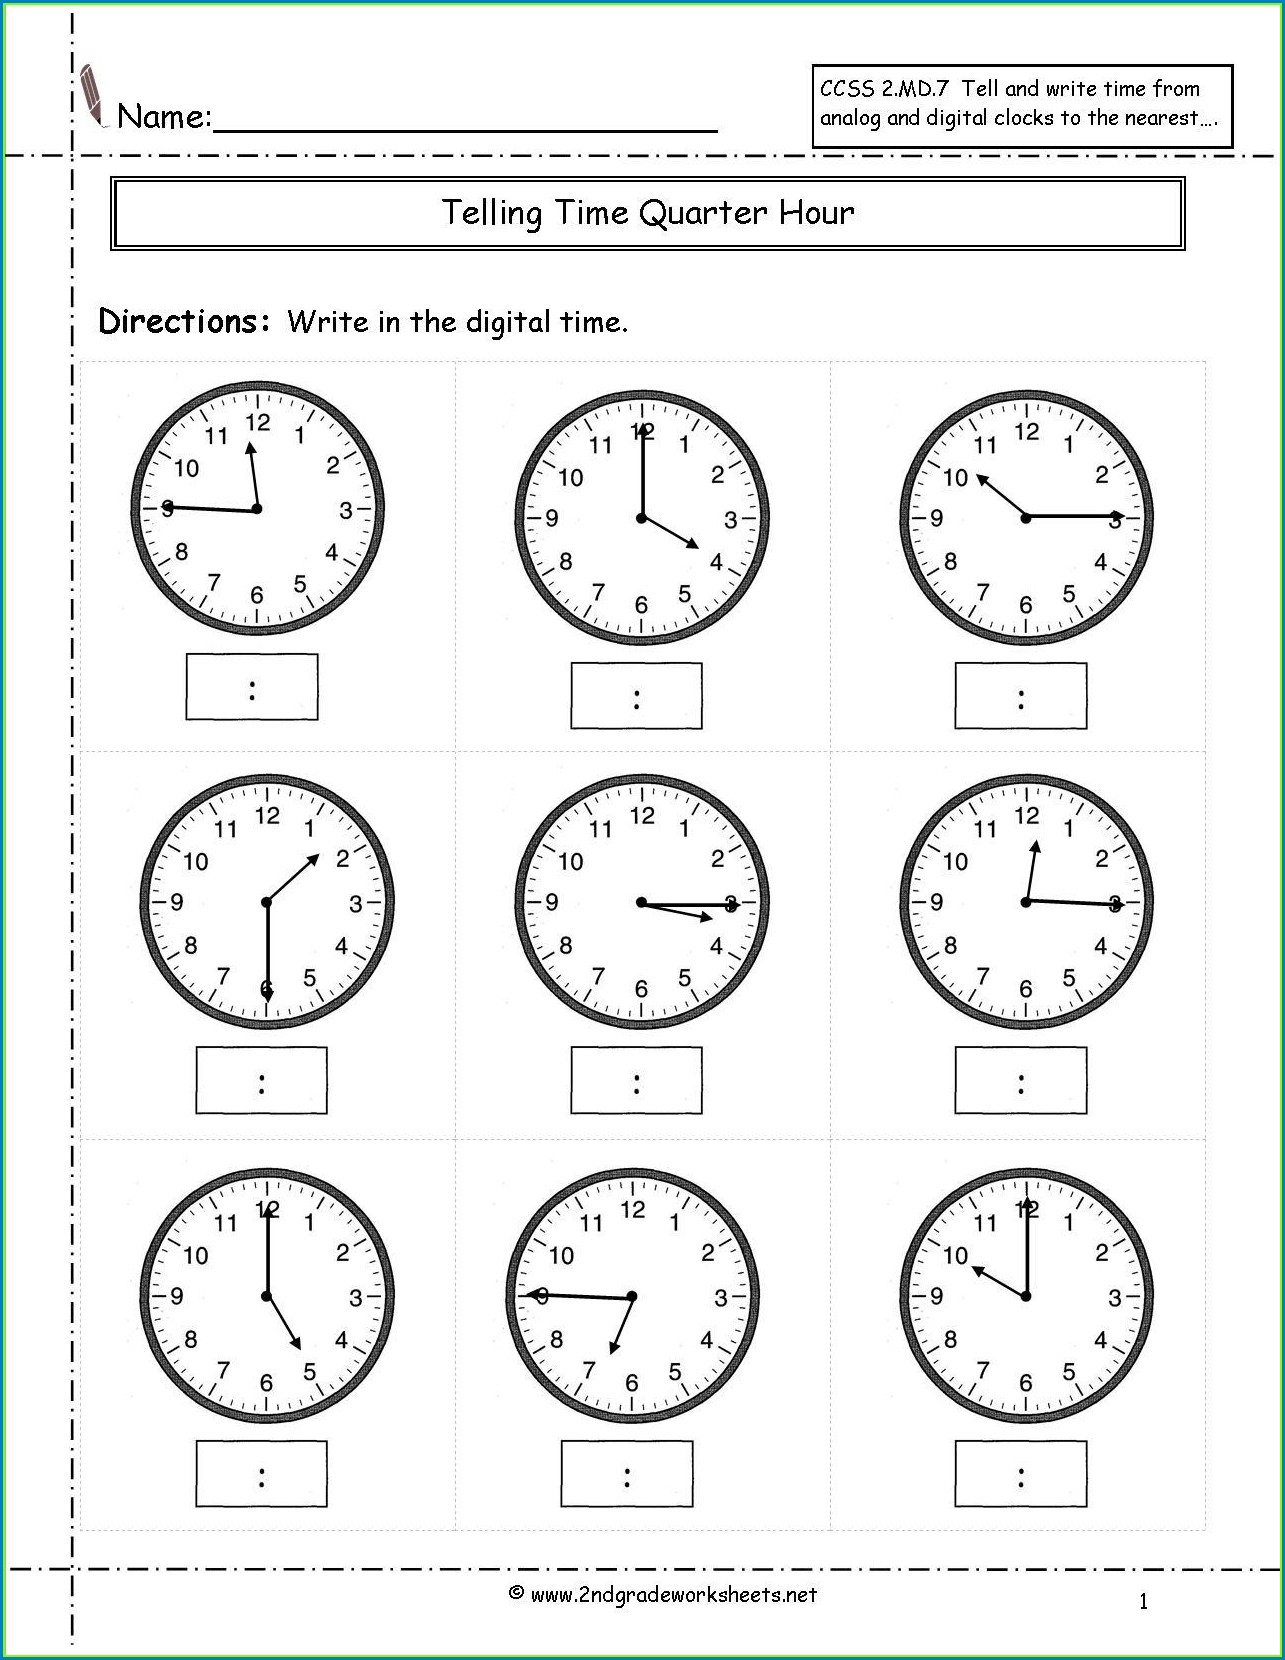 Printable 2nd Grade Clock Worksheets